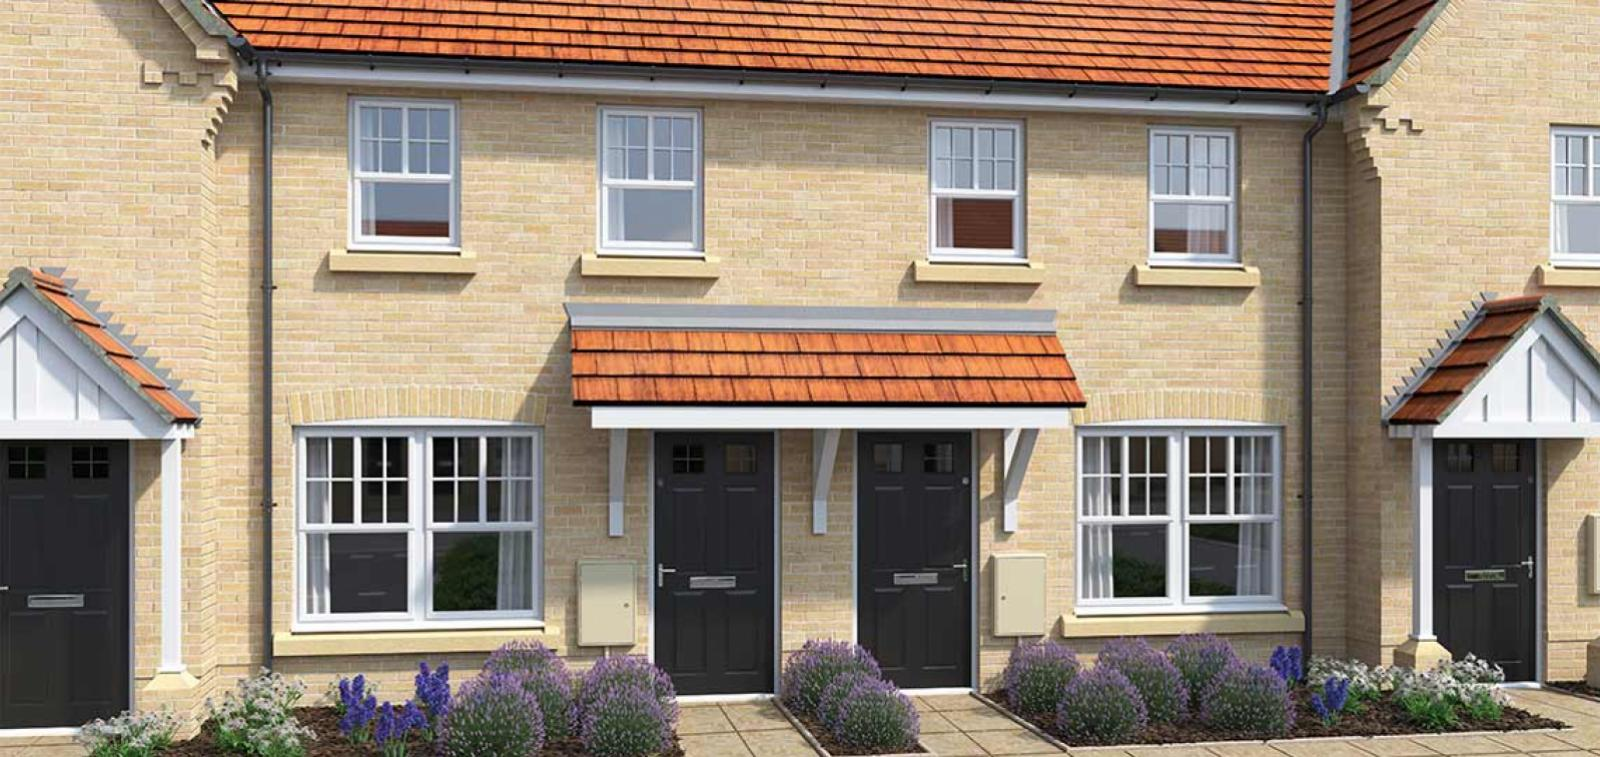 CGI rendering of the Ketch house type at High Elms Park